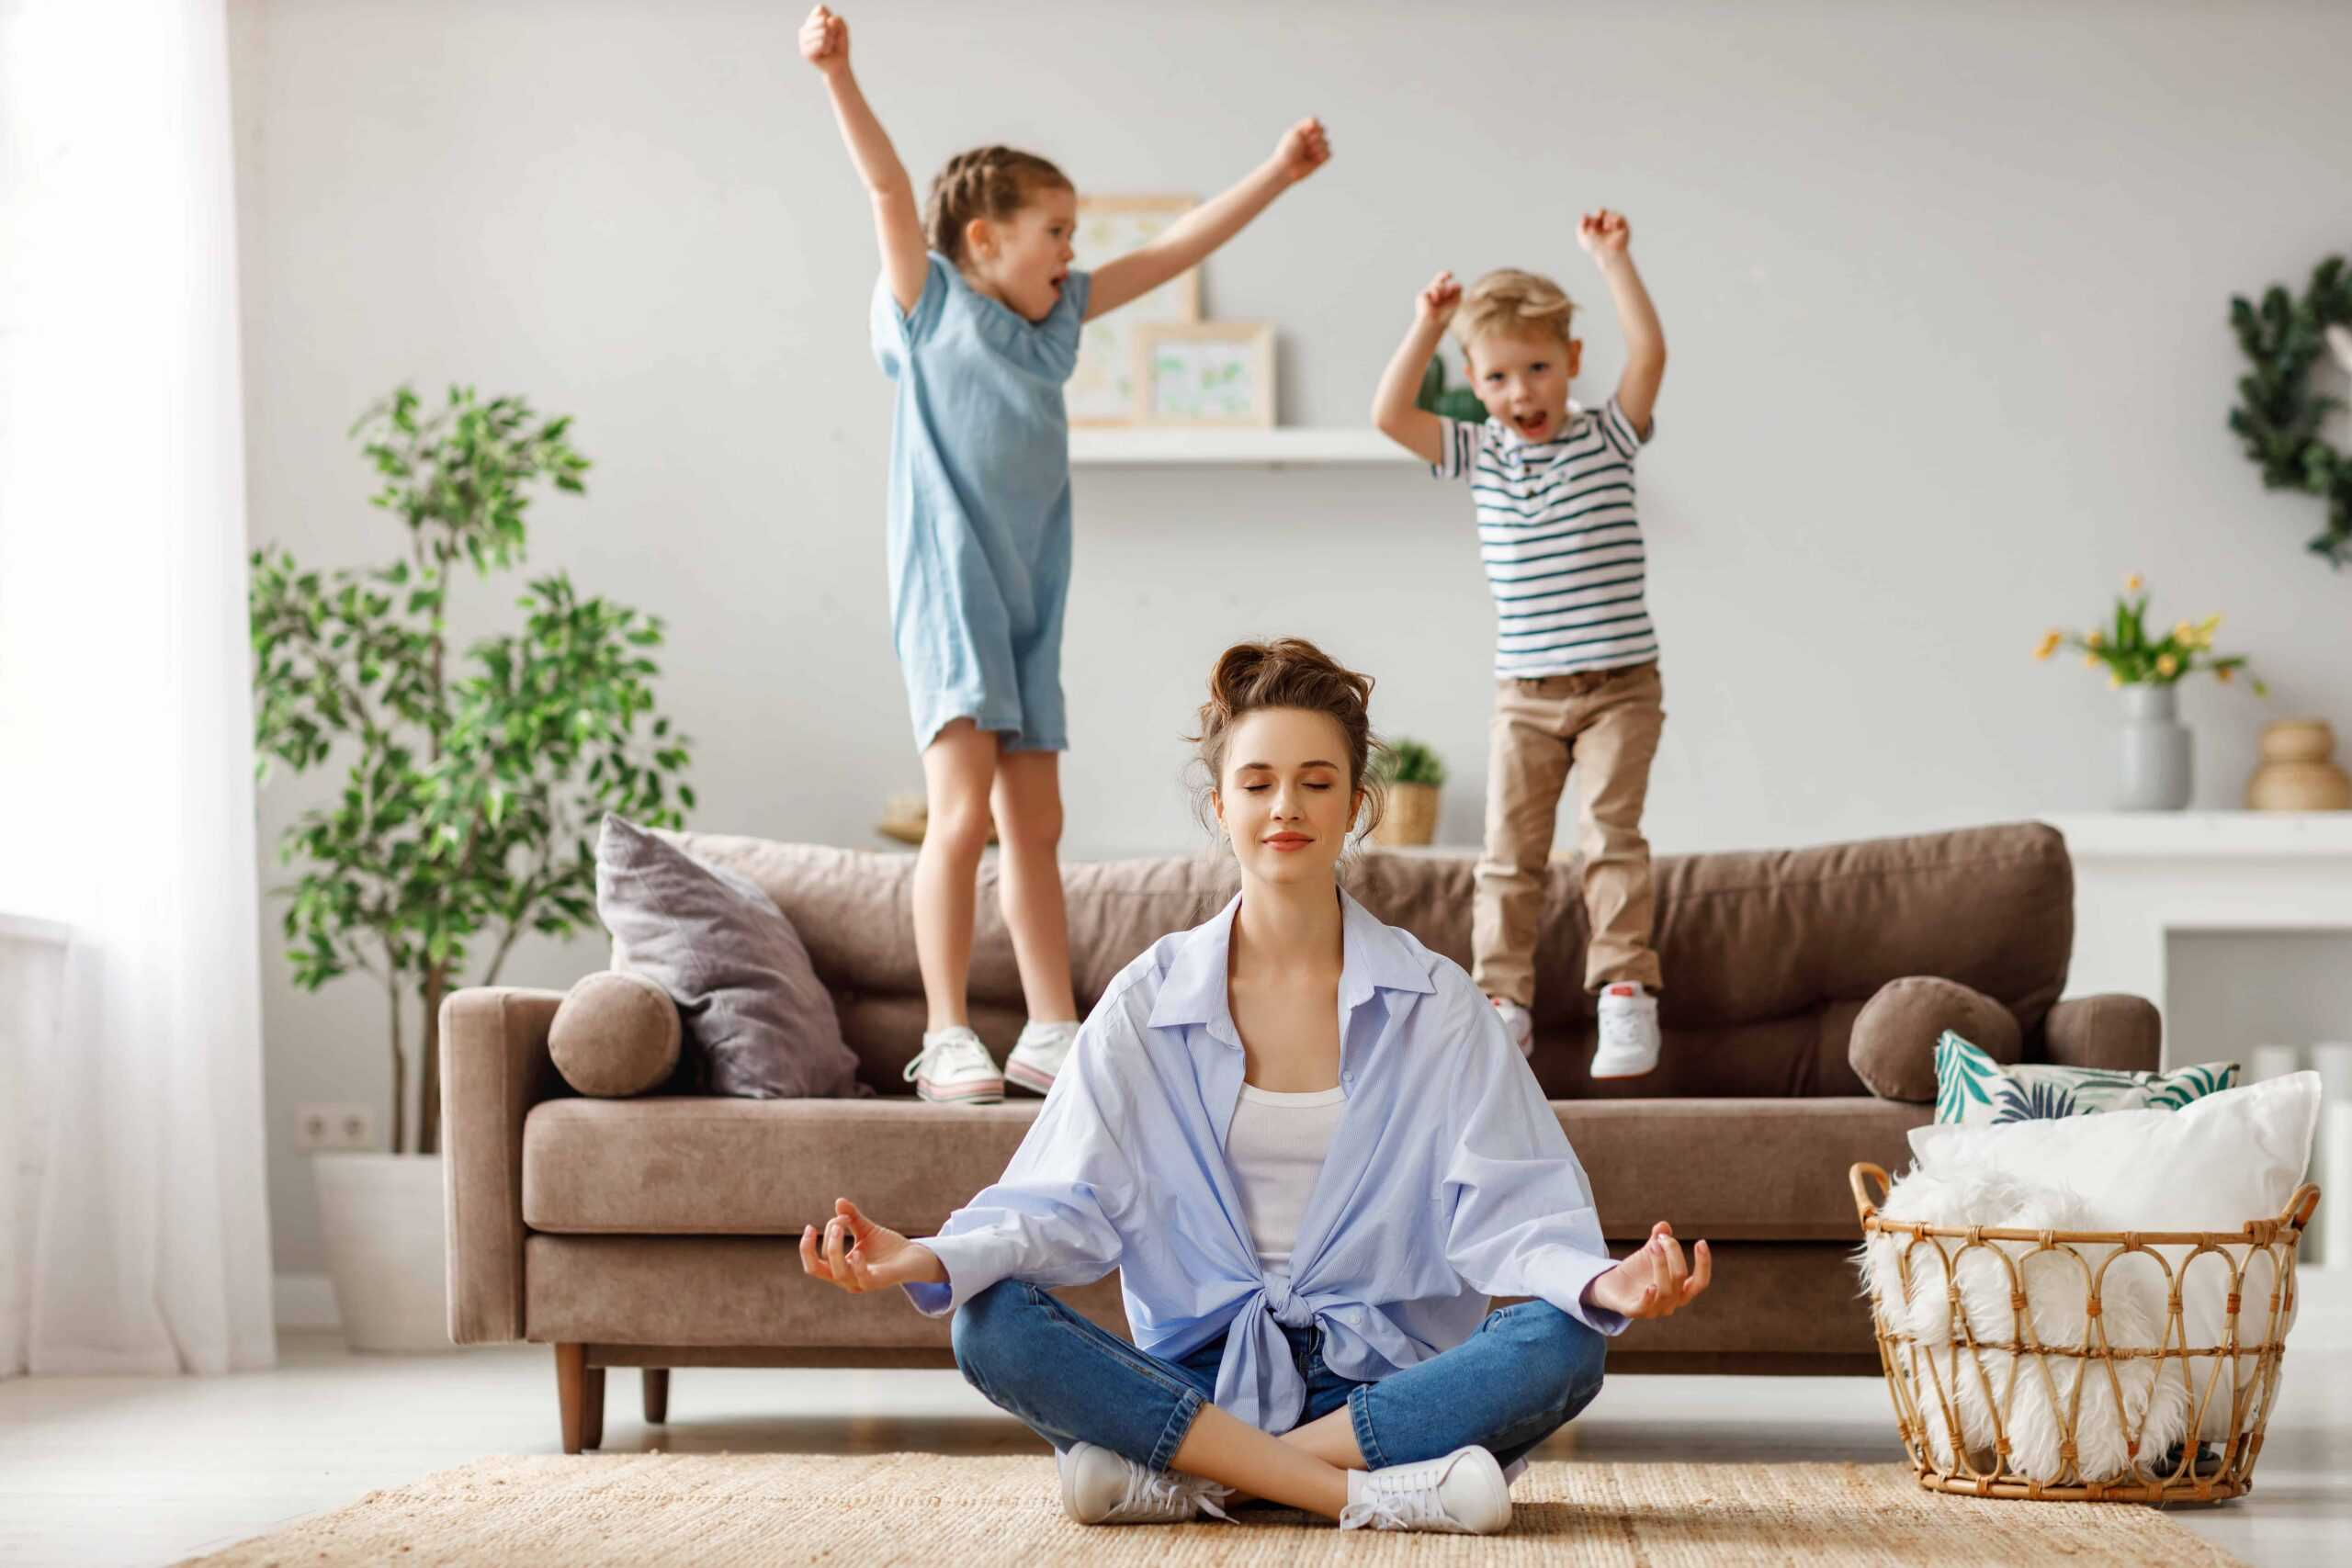 Mom meditating while kids jump on the couch